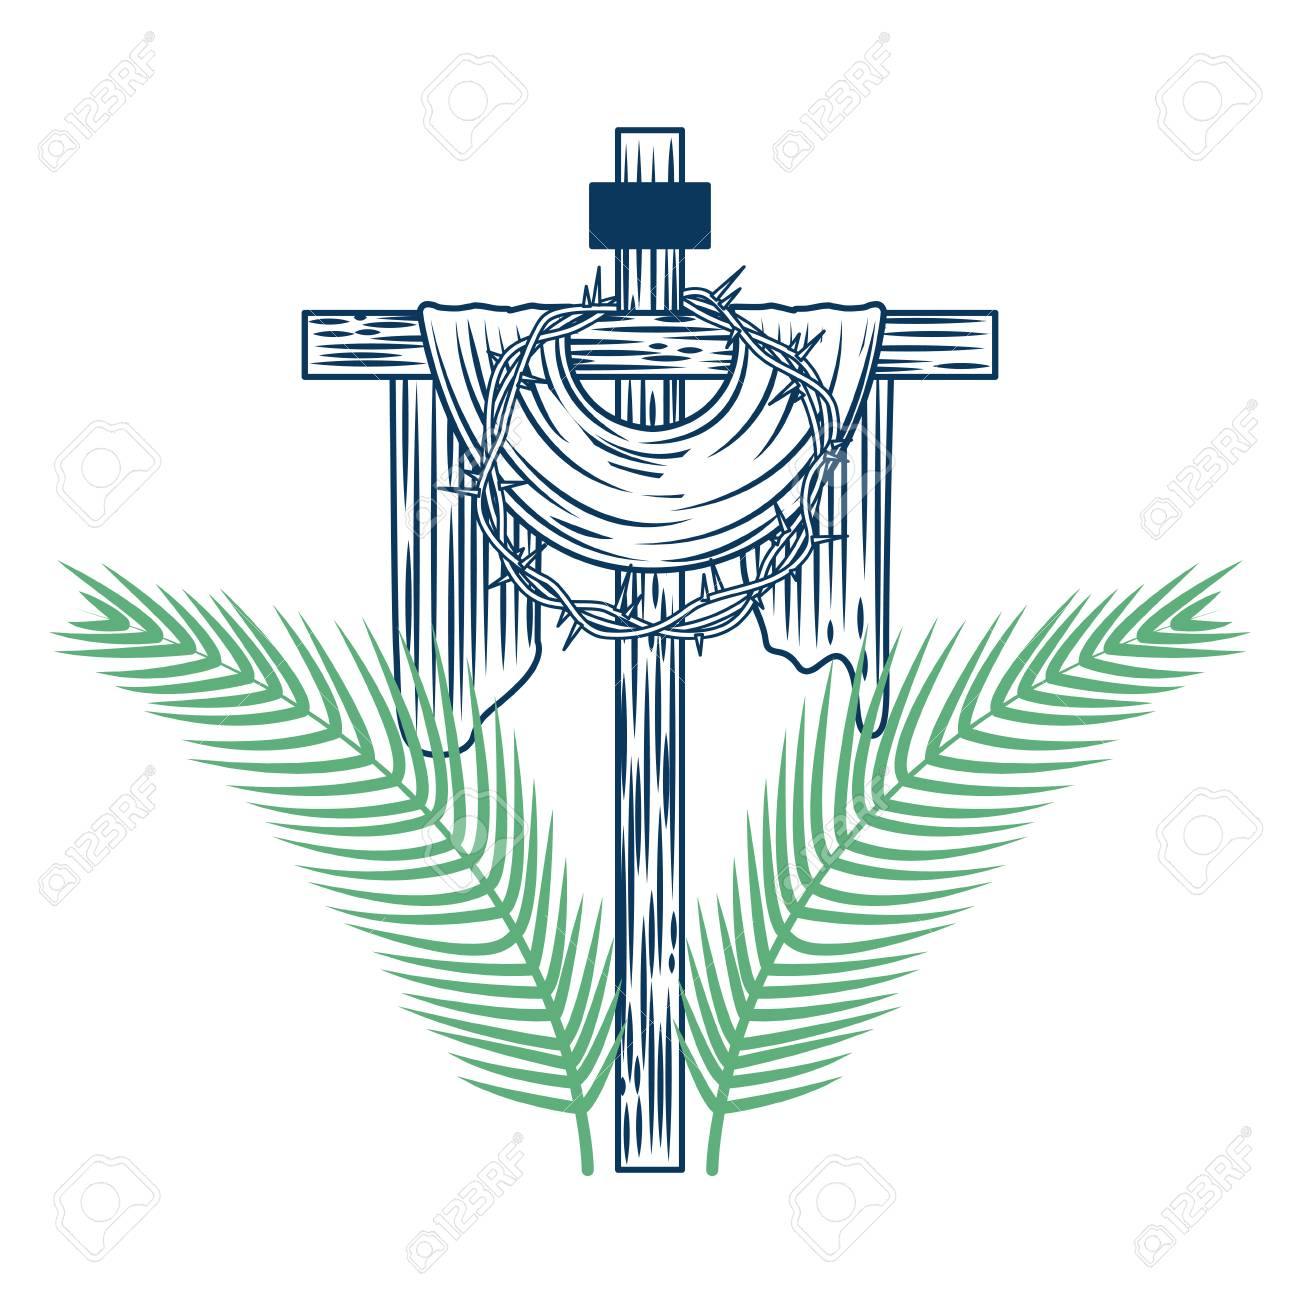 sacred cross crown of thorns tree palms vector illustration green and blue - 98874133